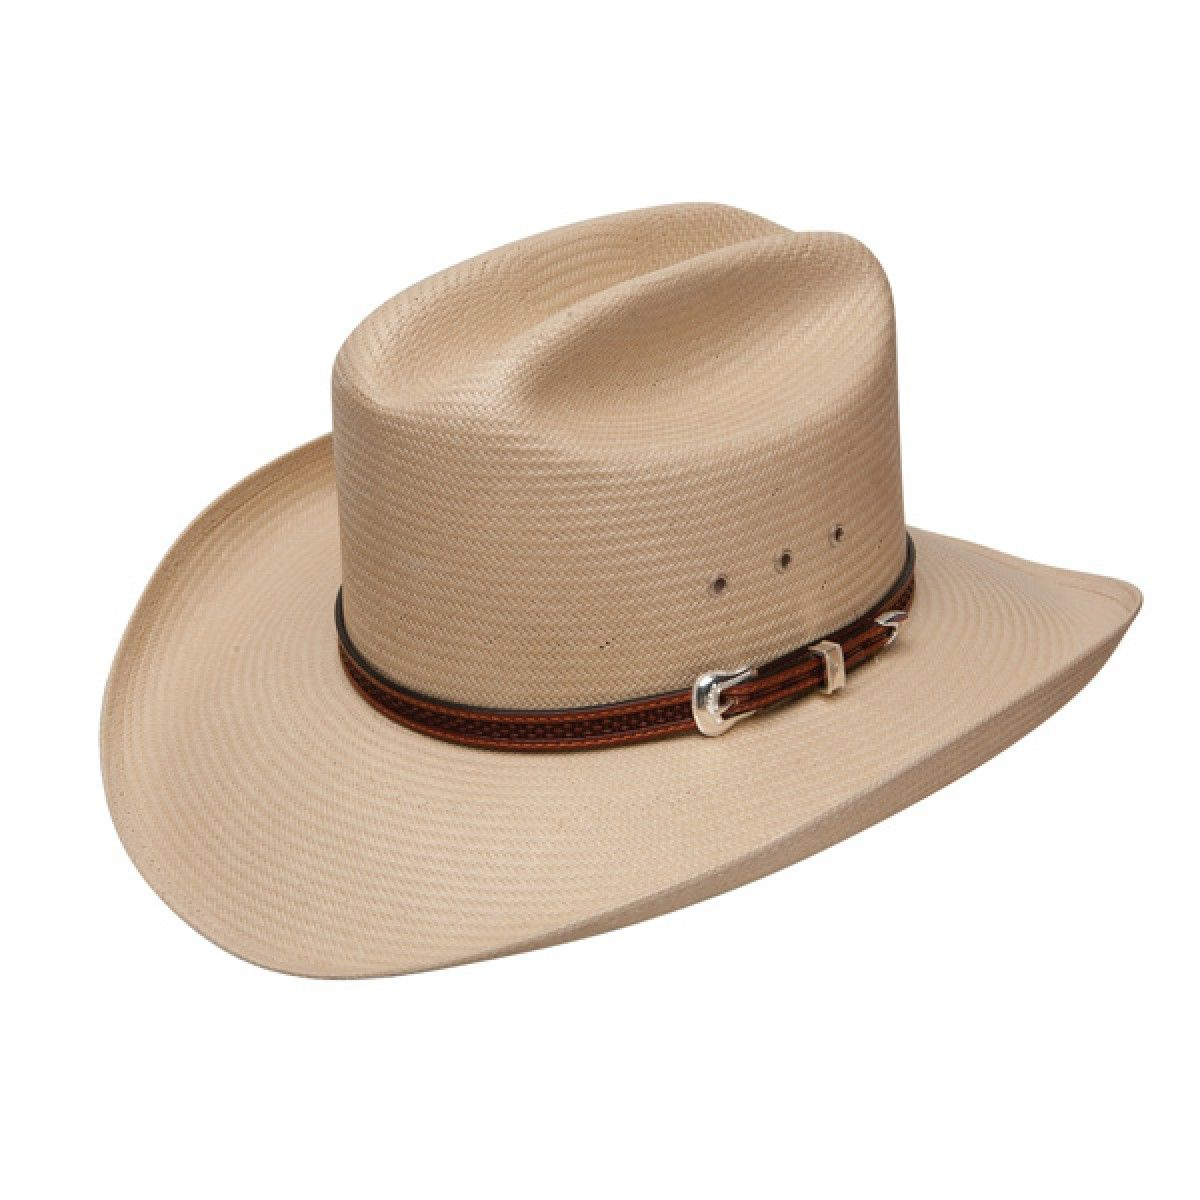 4d5014583bc Stetson Marshall - (10X) Straw Cowboy Hat